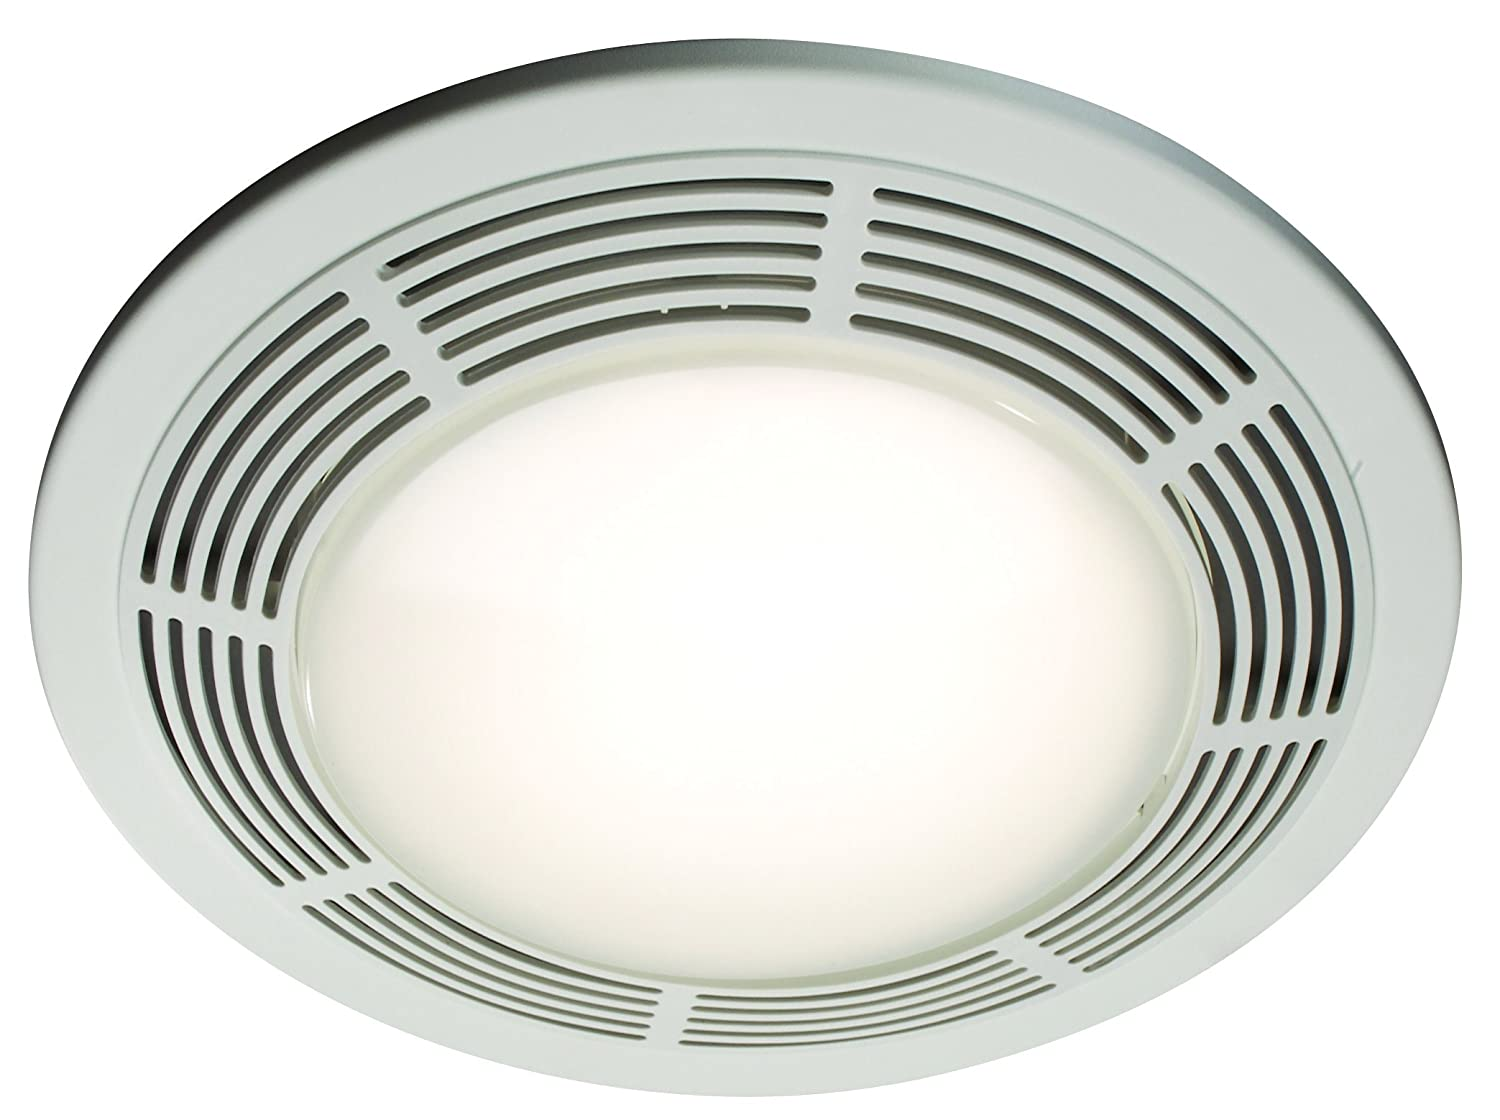 Nutone 8664rp designer fan and light with round white grille and nutone 8664rp designer fan and light with round white grille and glass lens 100 cfm 35 sones built in household ventilation fans amazon mozeypictures